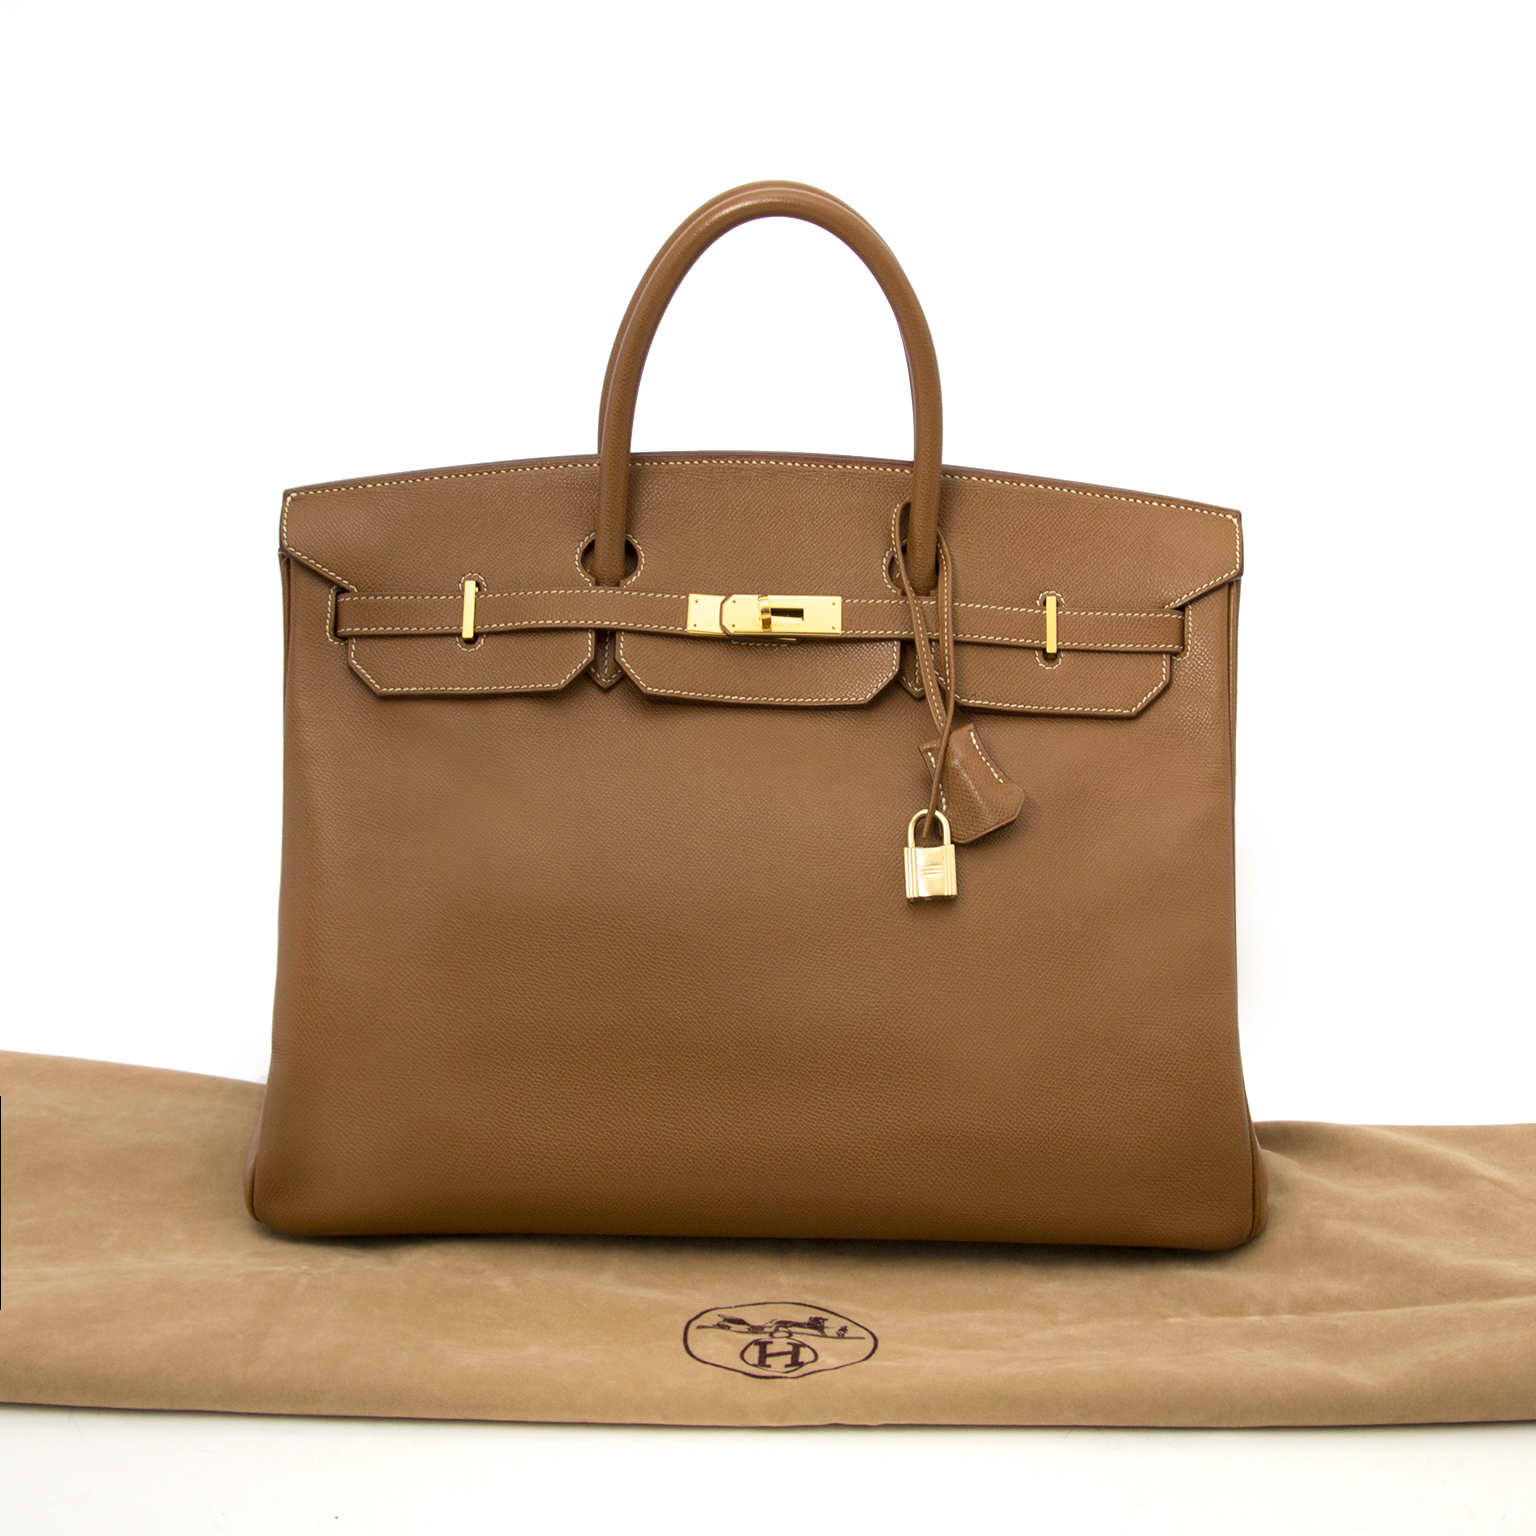 comme neuf sac a main 100% authenic Hermes Birkin 40 Gold  Hermes Veau Grain Lisse GHW for the best price